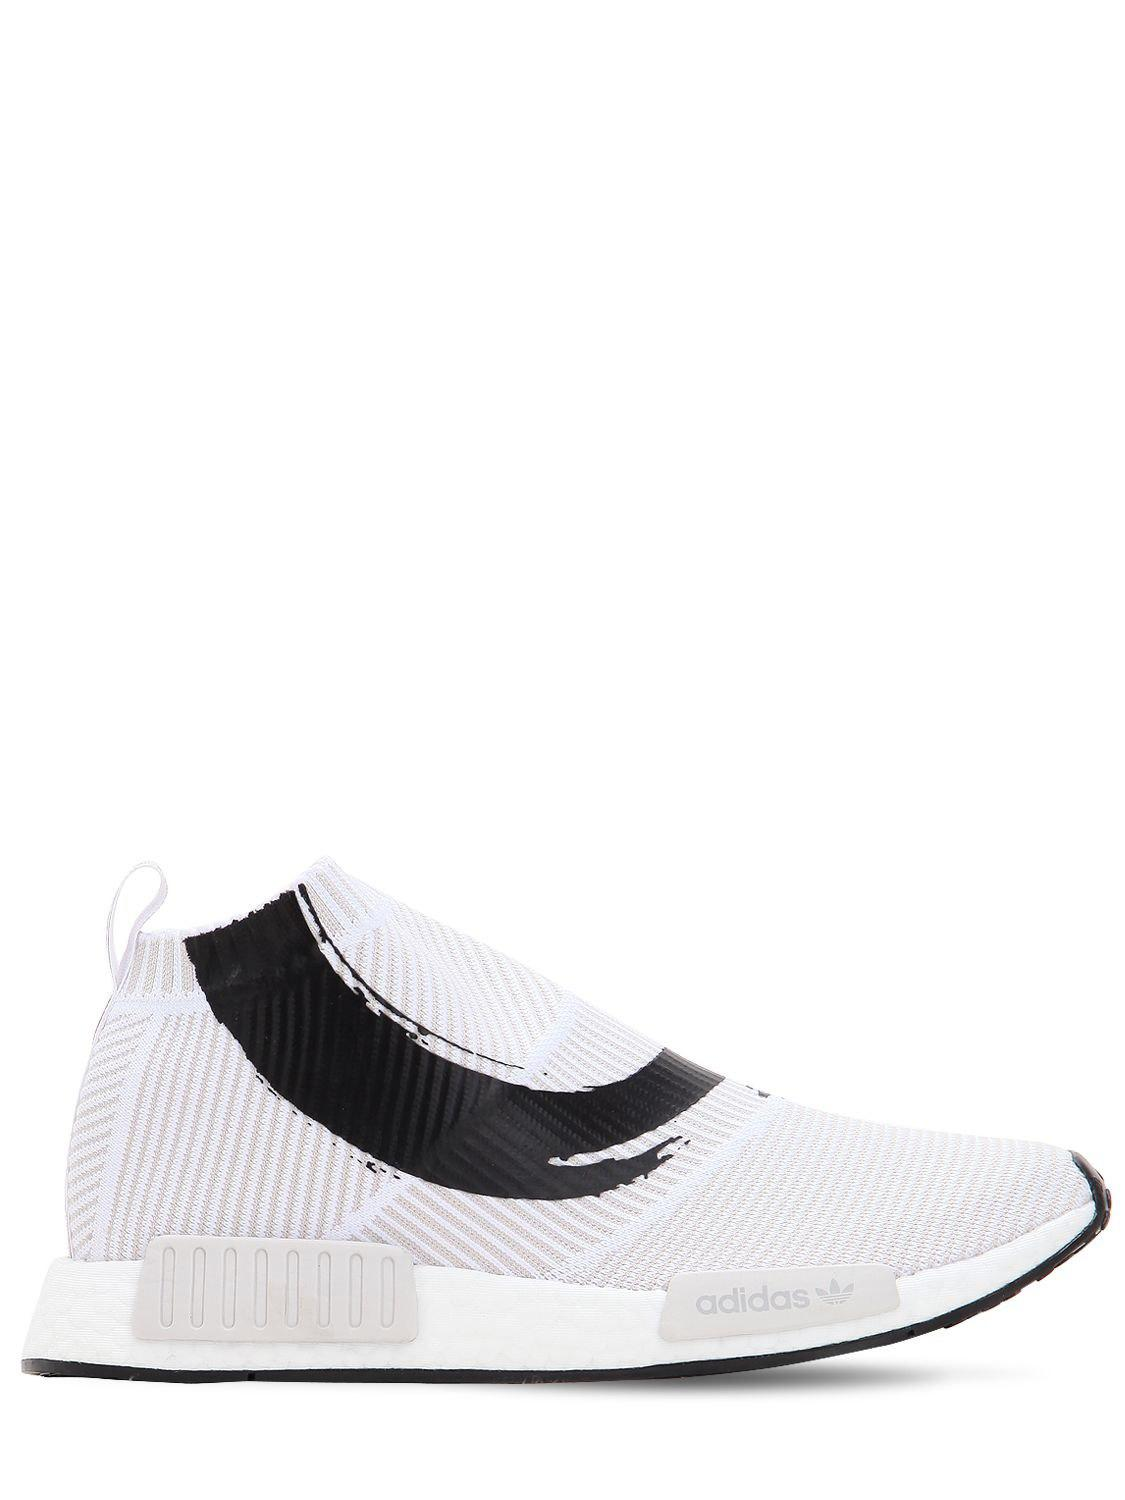 53b0399b40e2f adidas Originals Nmd cs1 Primeknit Sneakers in White for Men - Lyst